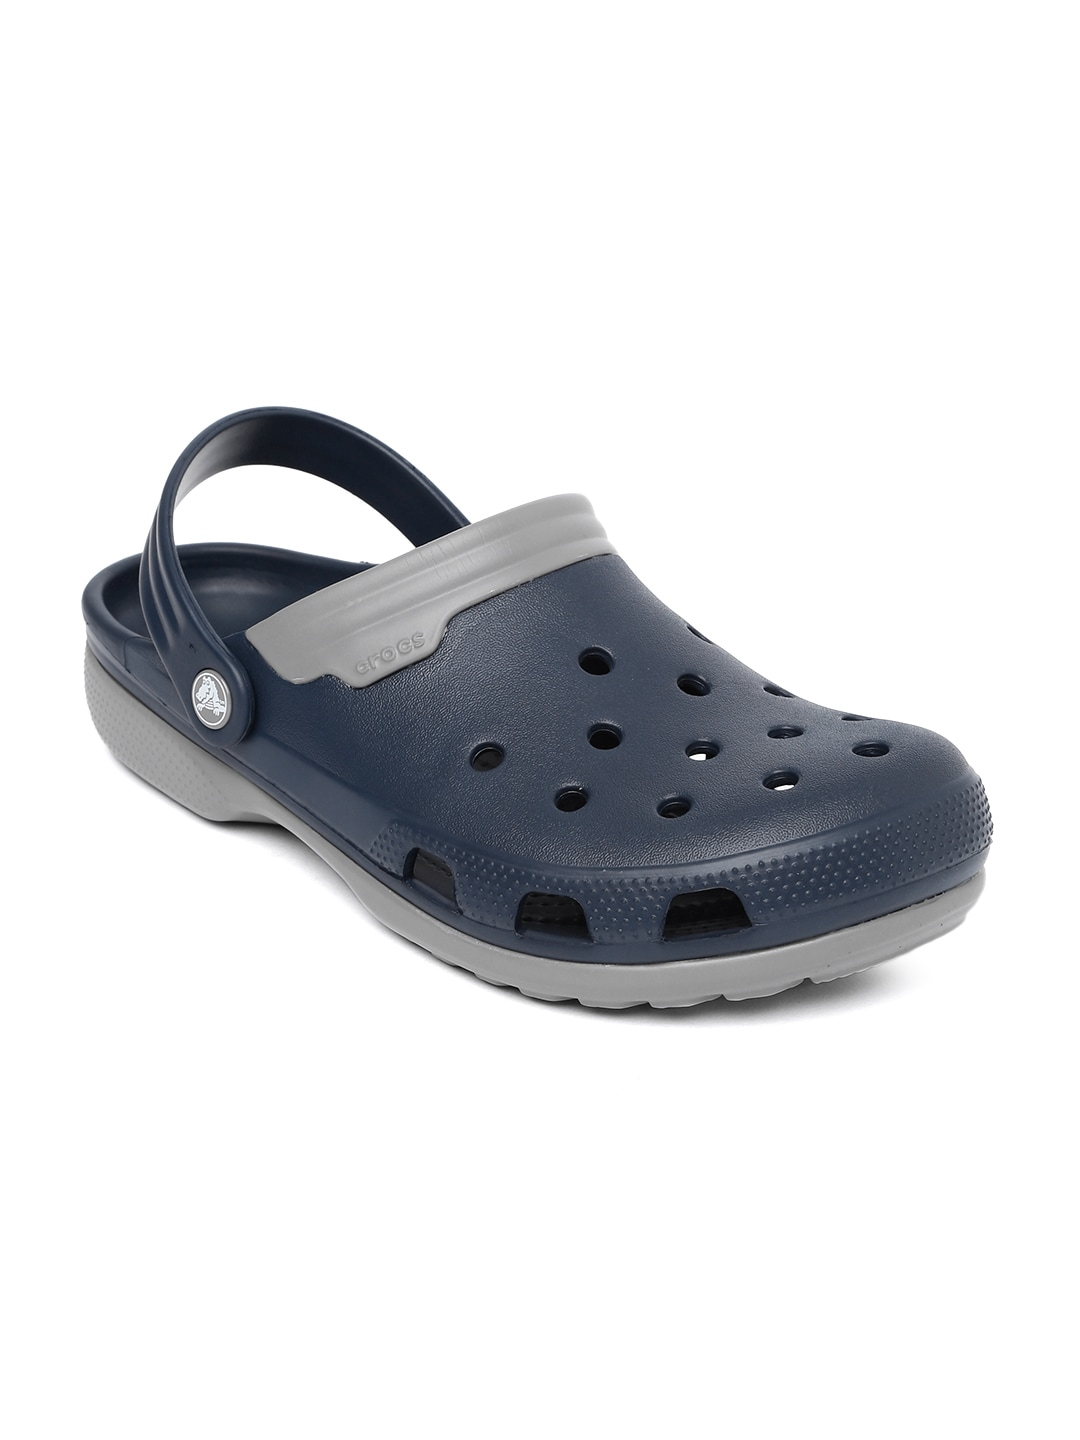 030c518ab59619 Crocs Shoes Online - Buy Crocs Flip Flops   Sandals Online in India - Myntra